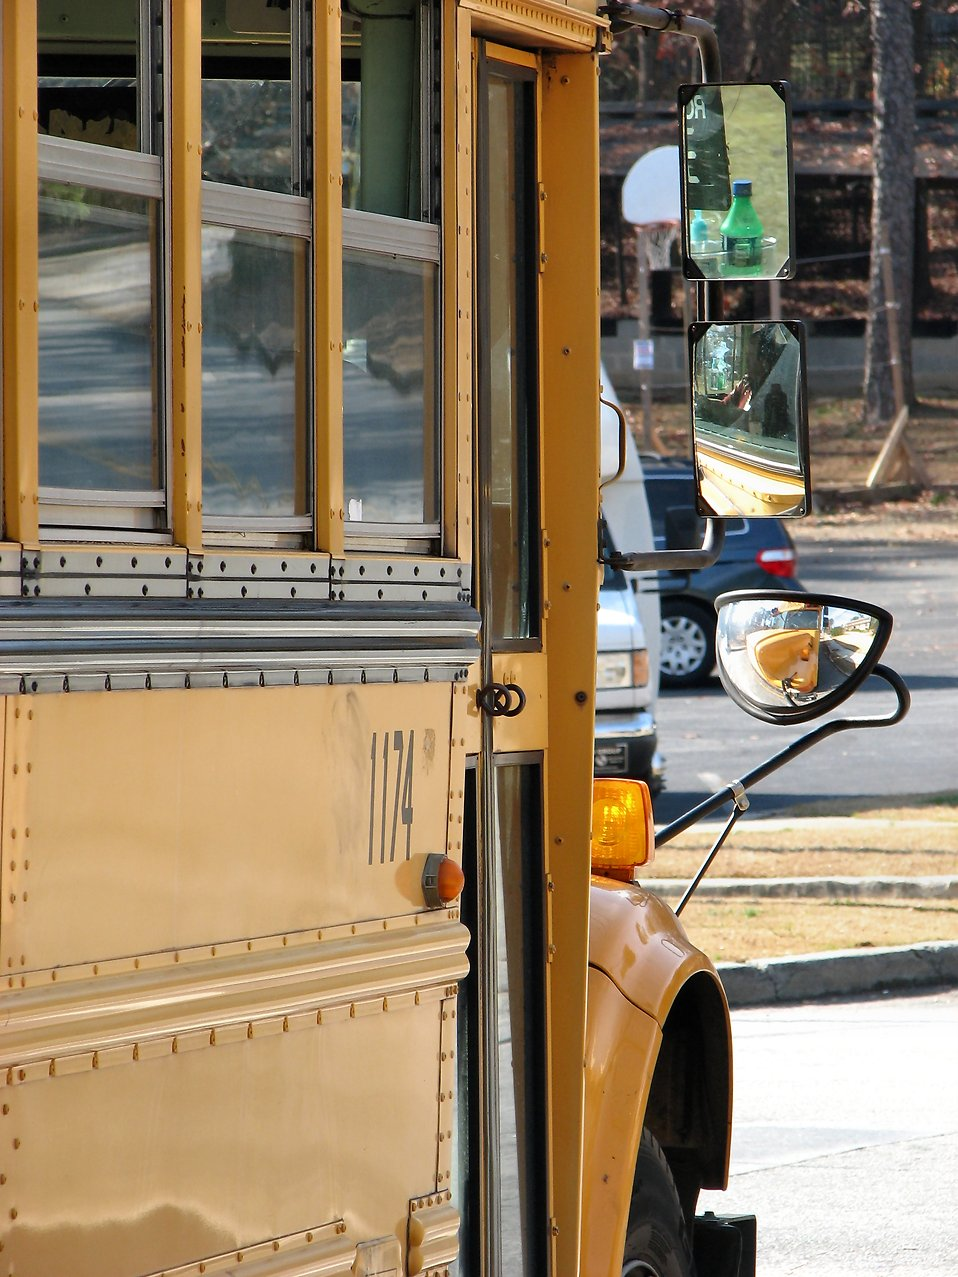 Closeup of a school bus : Free Stock Photo